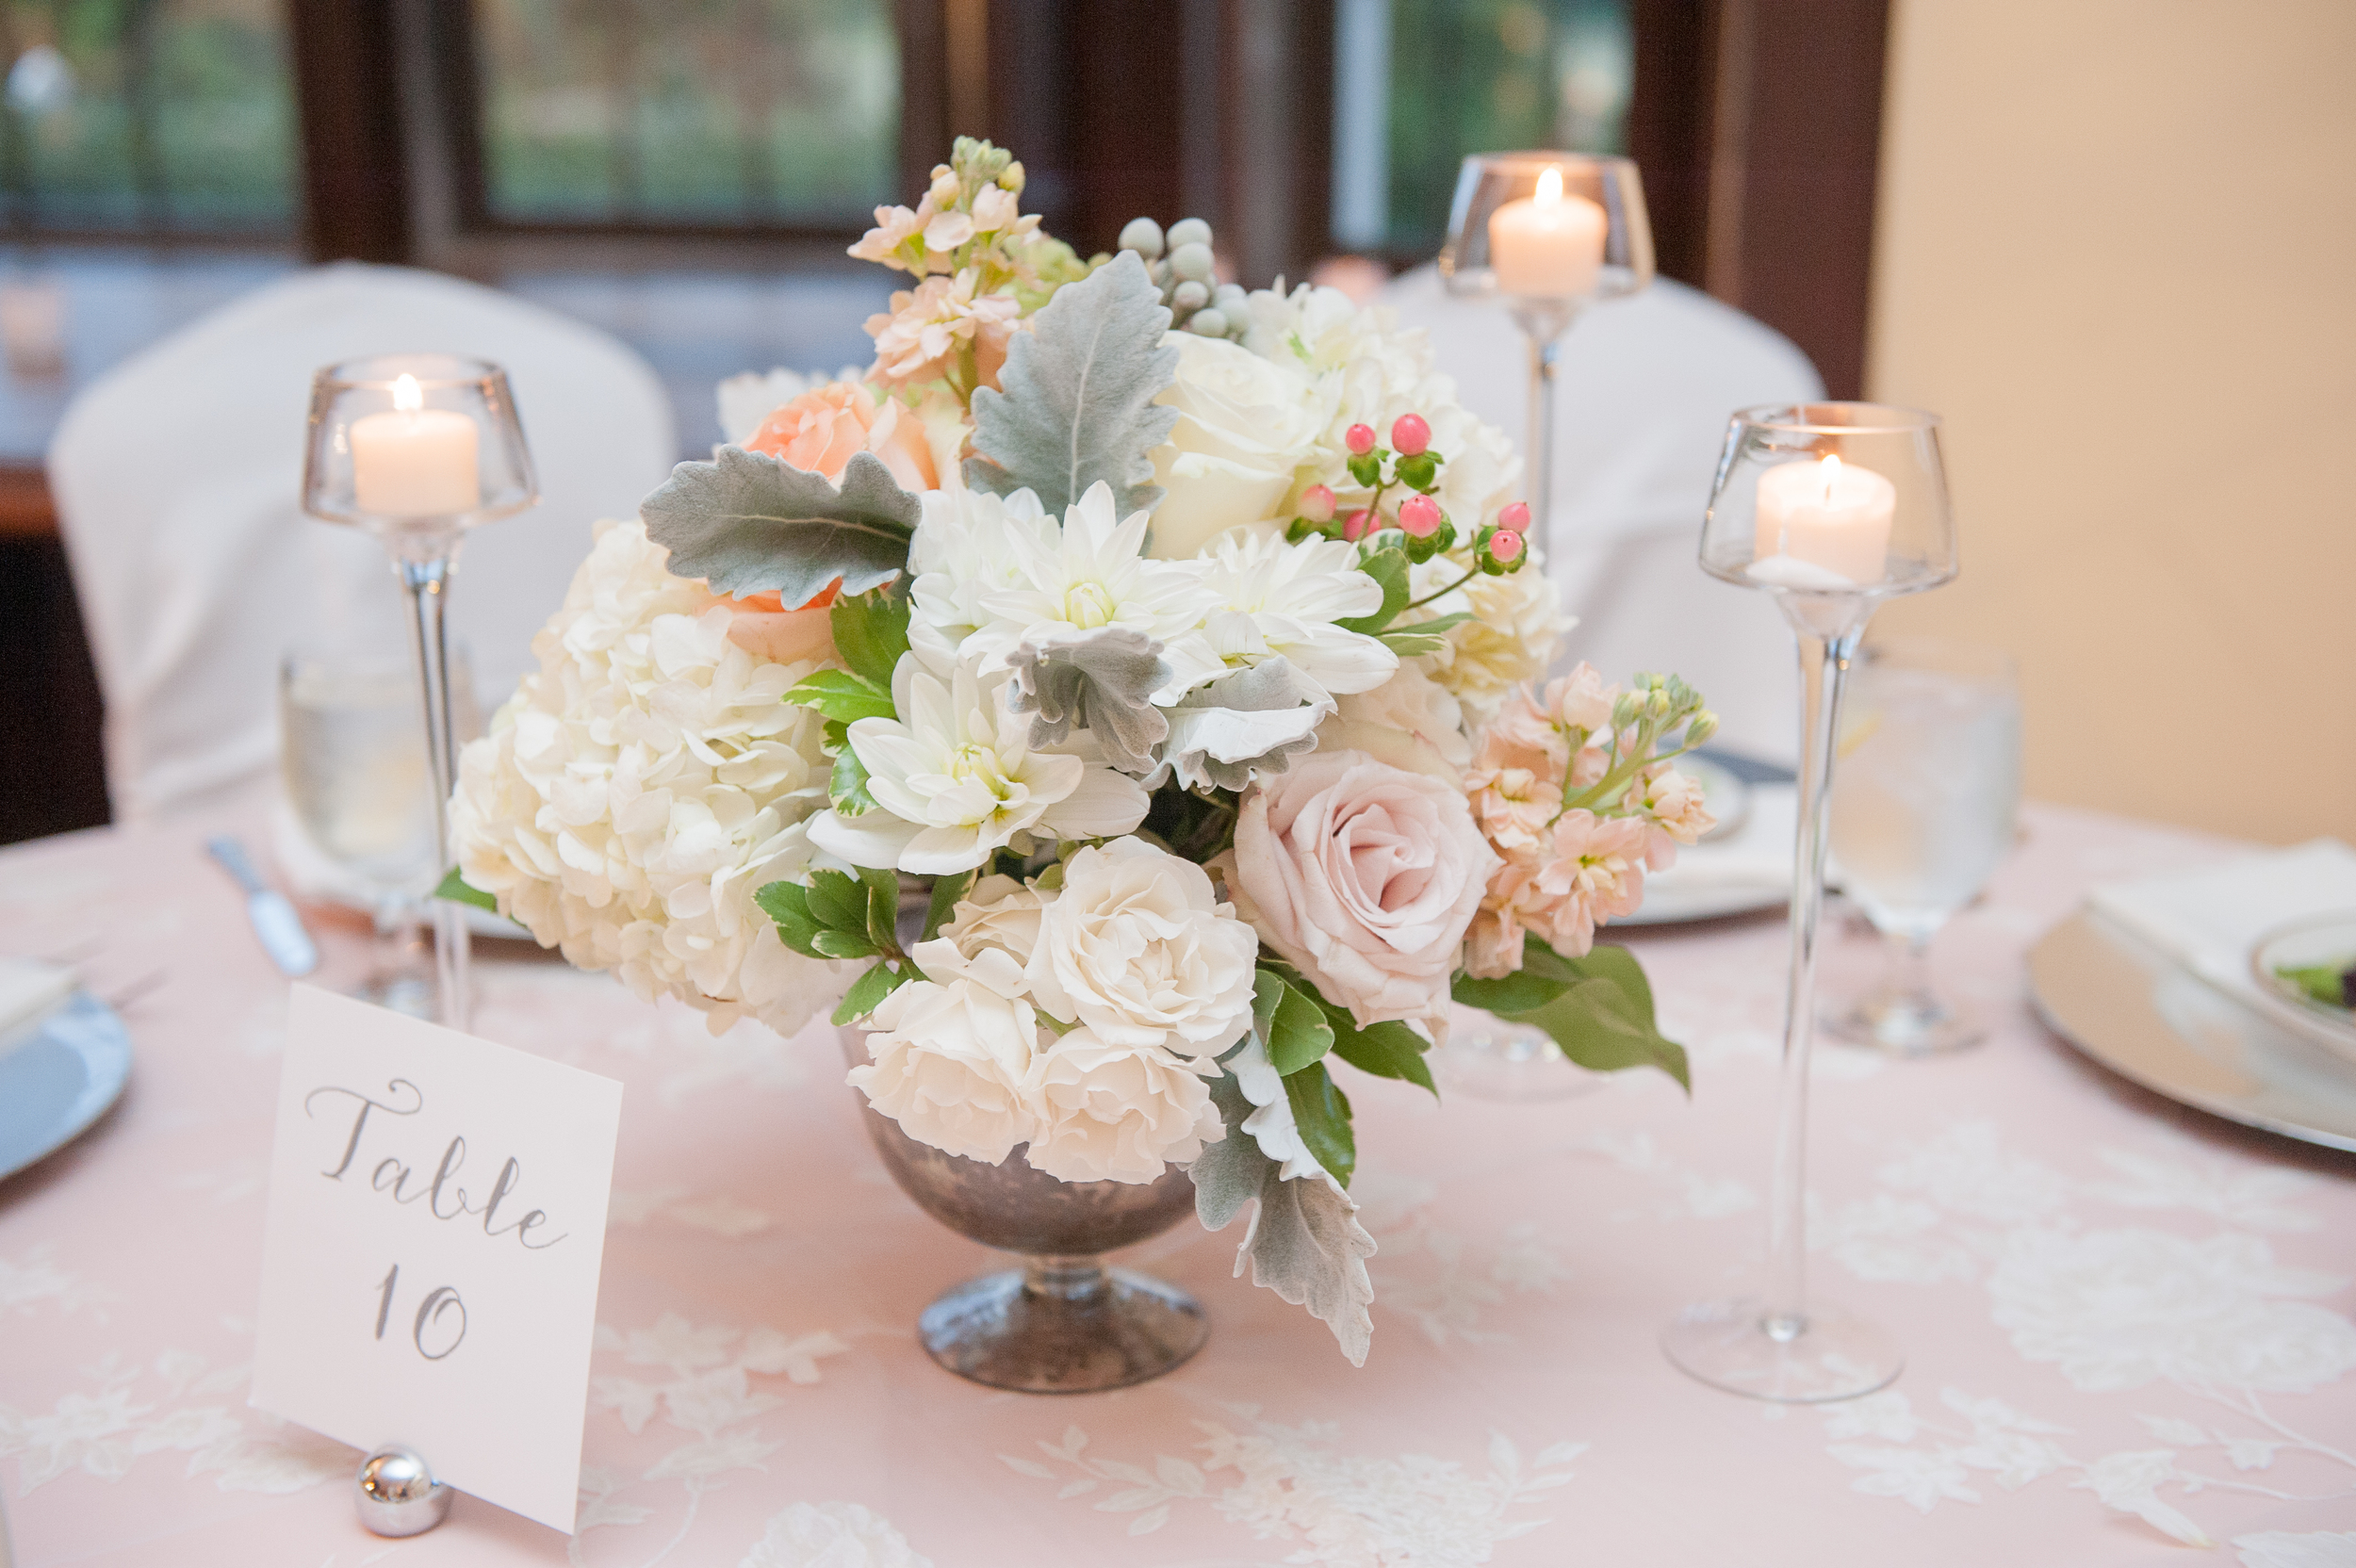 waveny_house_wedding_New_canaan_CT_Amy_Champagne_Events979.jpg